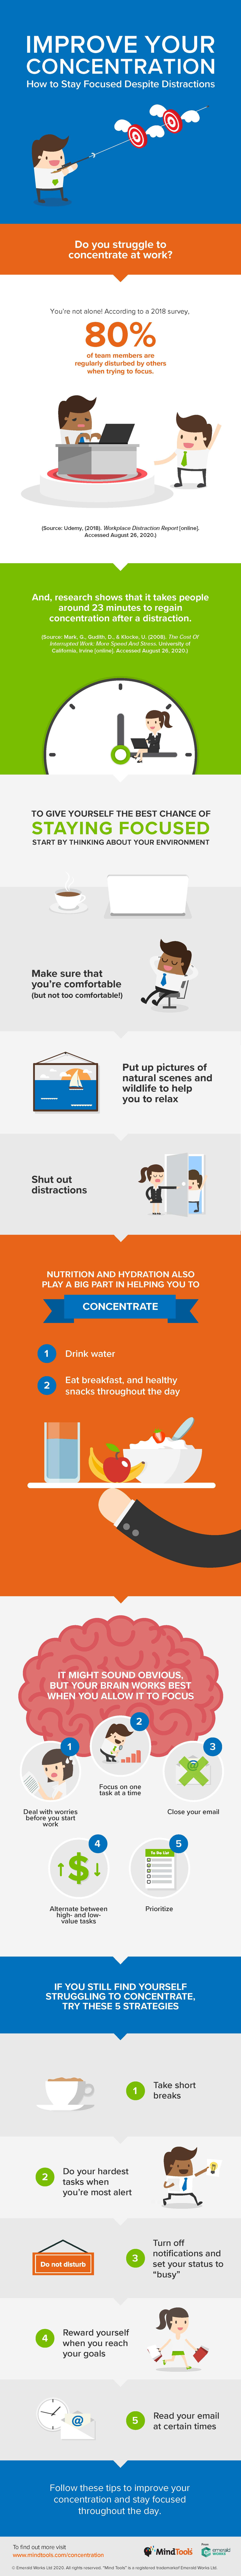 Improve Your Concentration Infographic